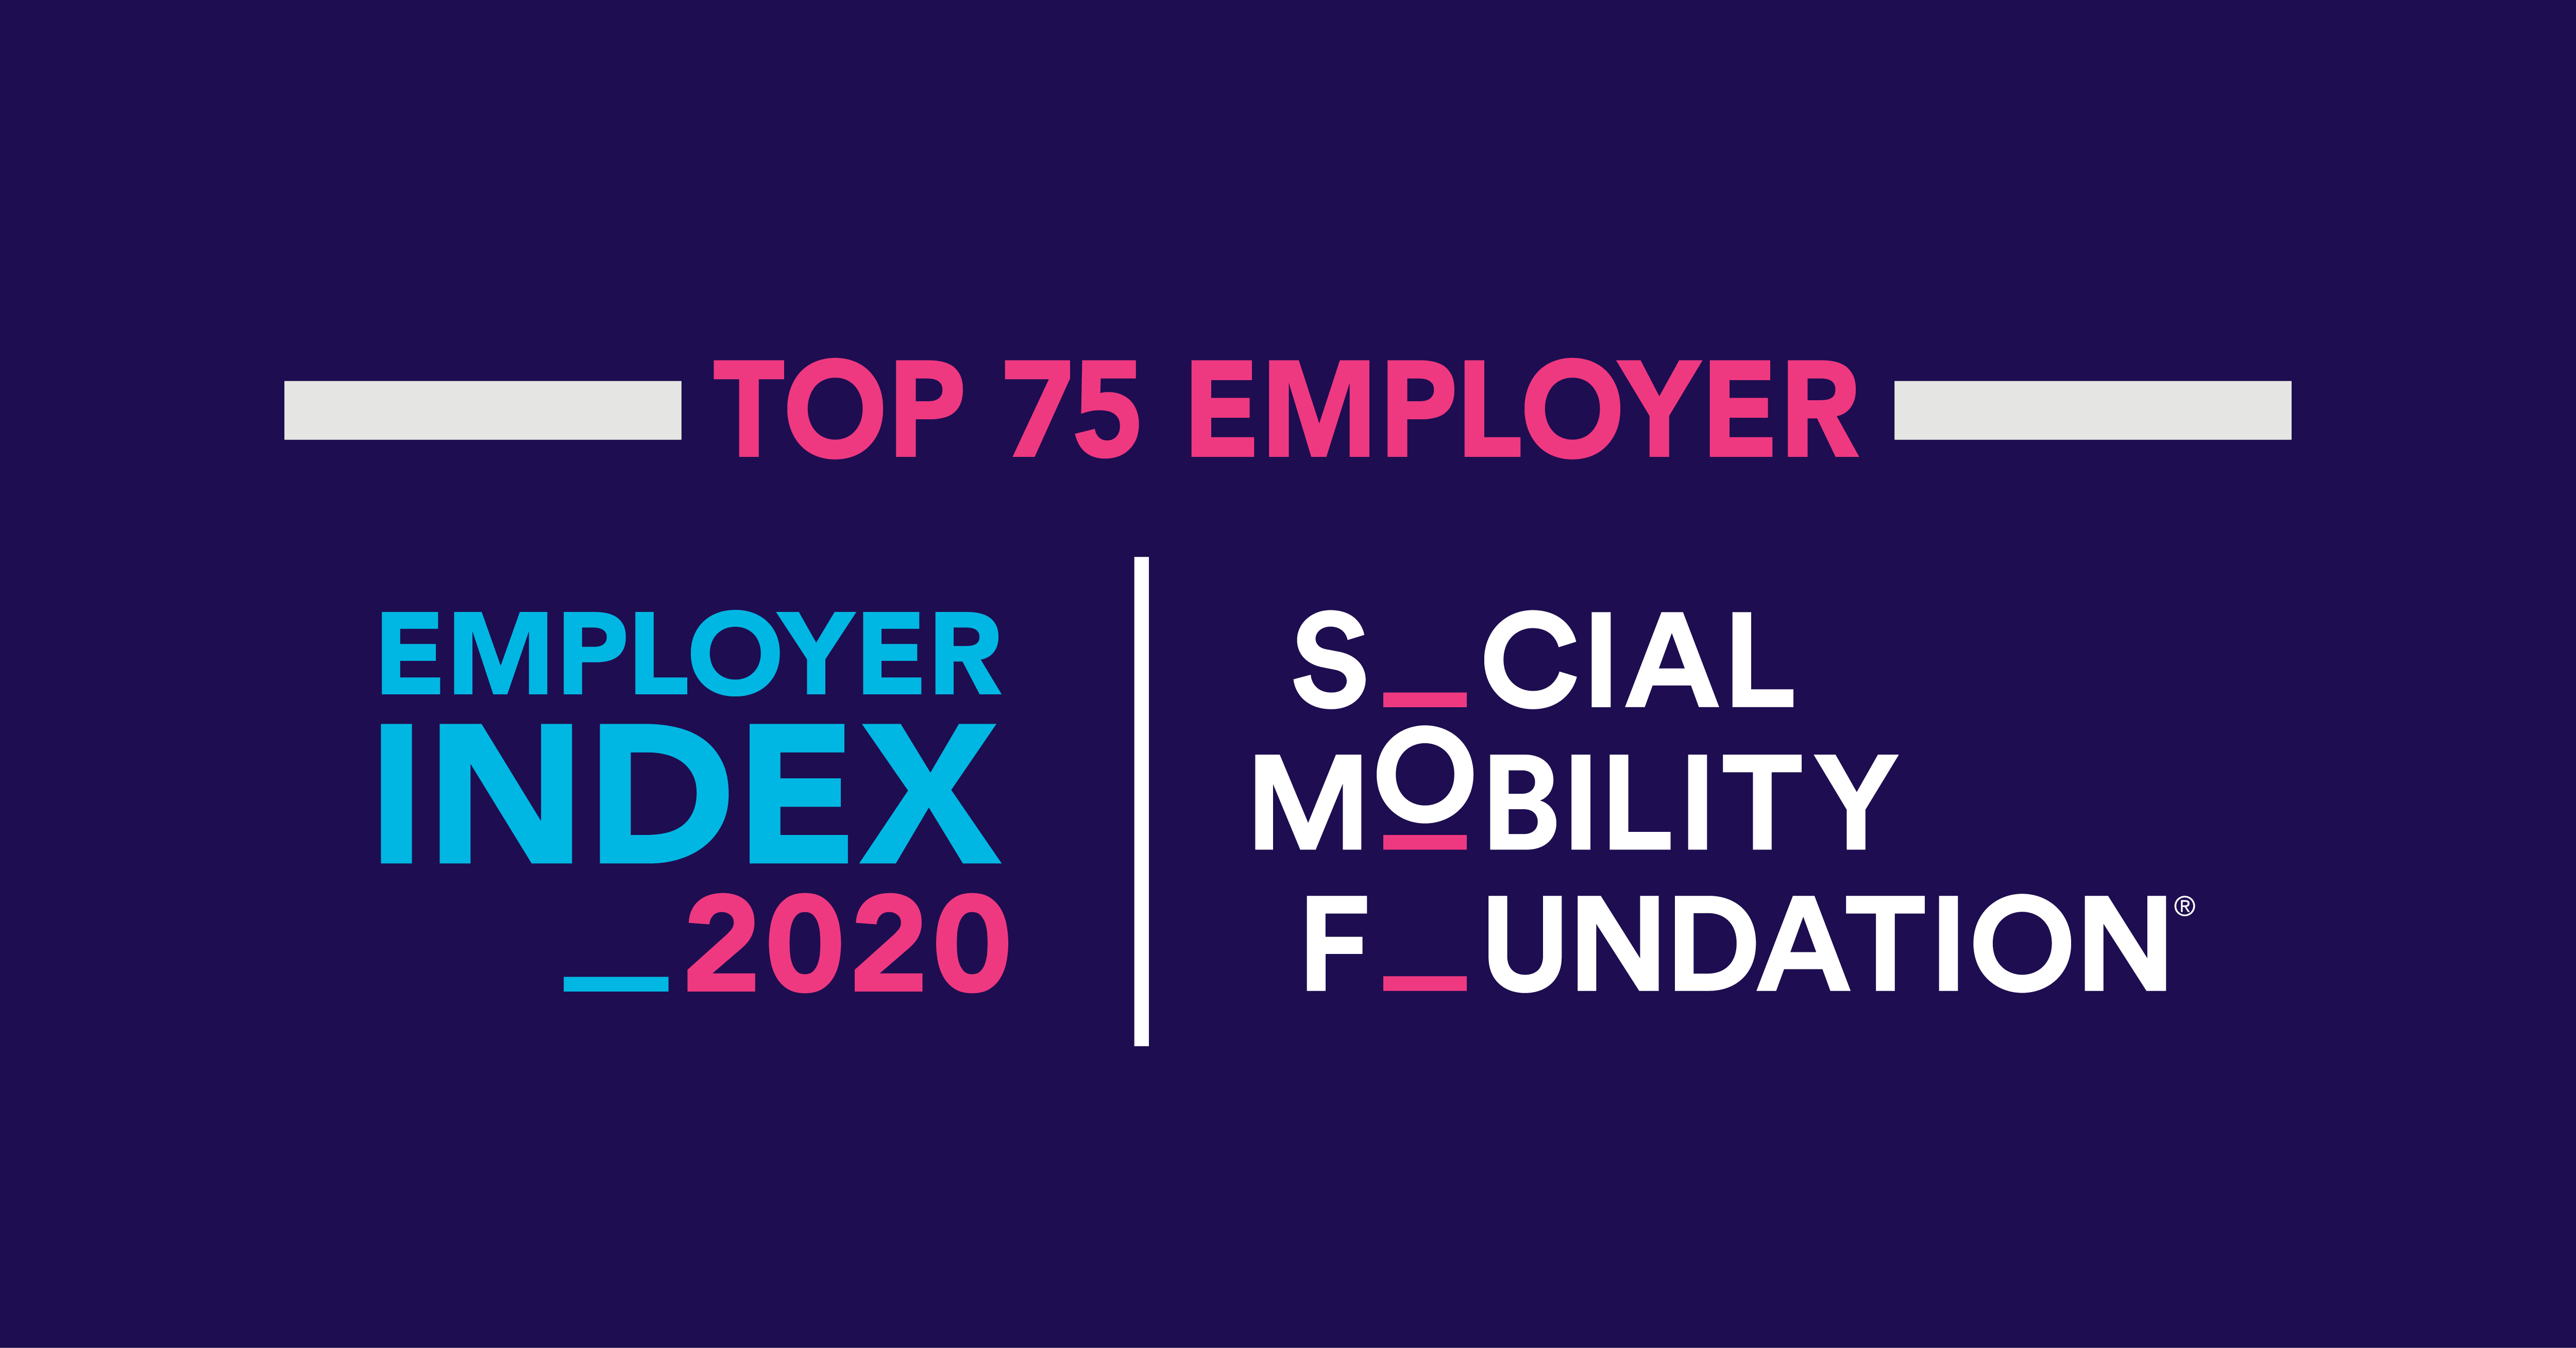 Enterprise ranked as a top Social Mobility Employer for fourth consecutive year